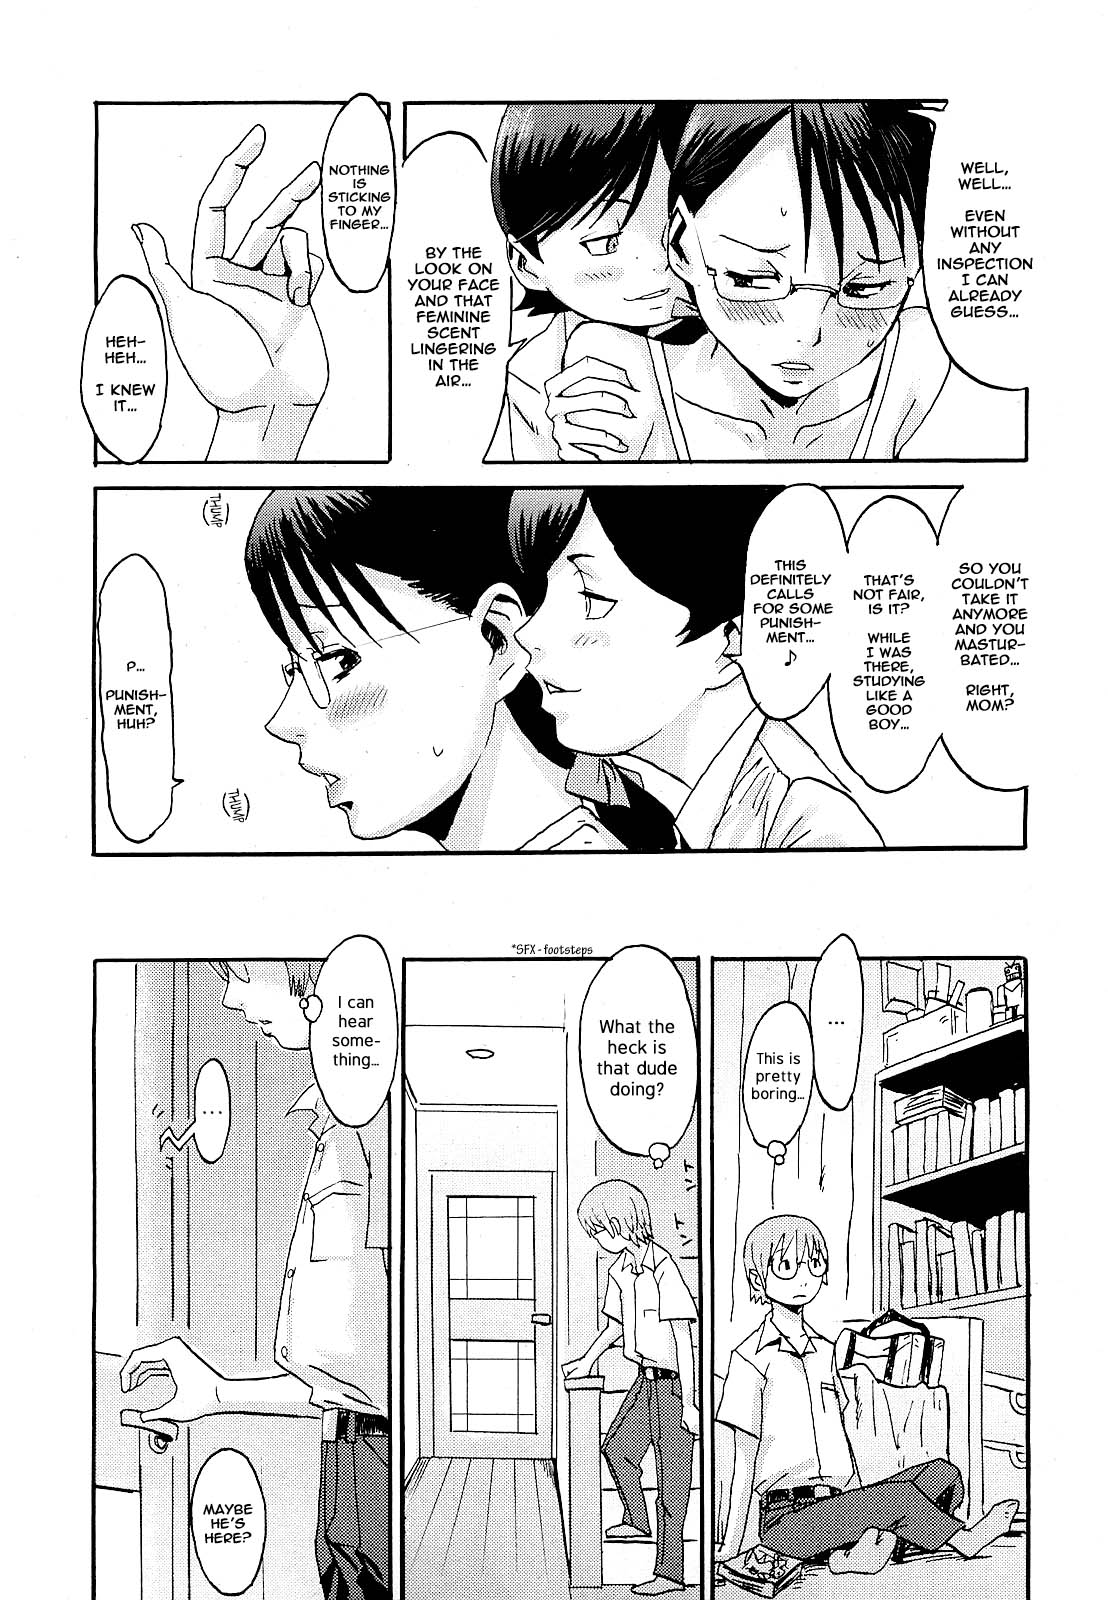 Incest Mom And Son Manga Beautiful epic hentai: depraved mother and son